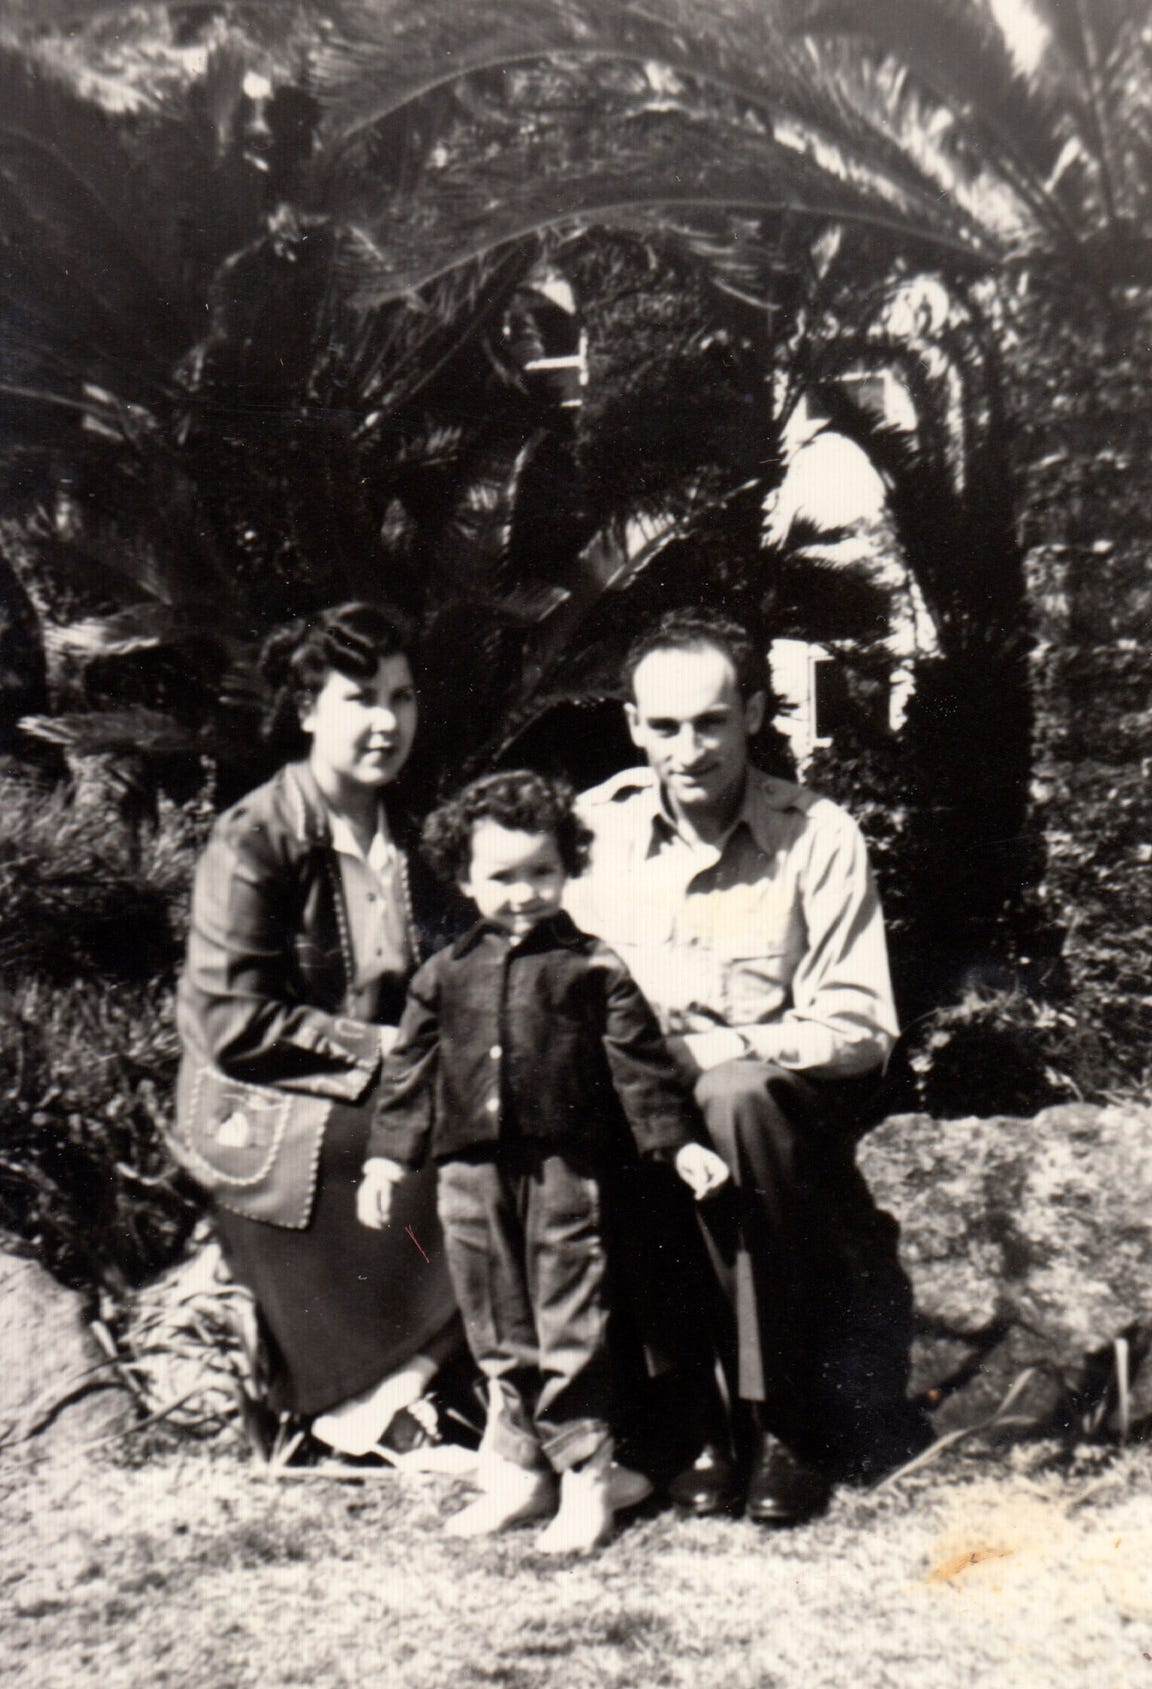 The Campos family (from left): Jovita, Jennie, and Joe at the Atami Hotel in Japan in December of 1949, while Joe was stationed in Japan before the start of the Korean War.